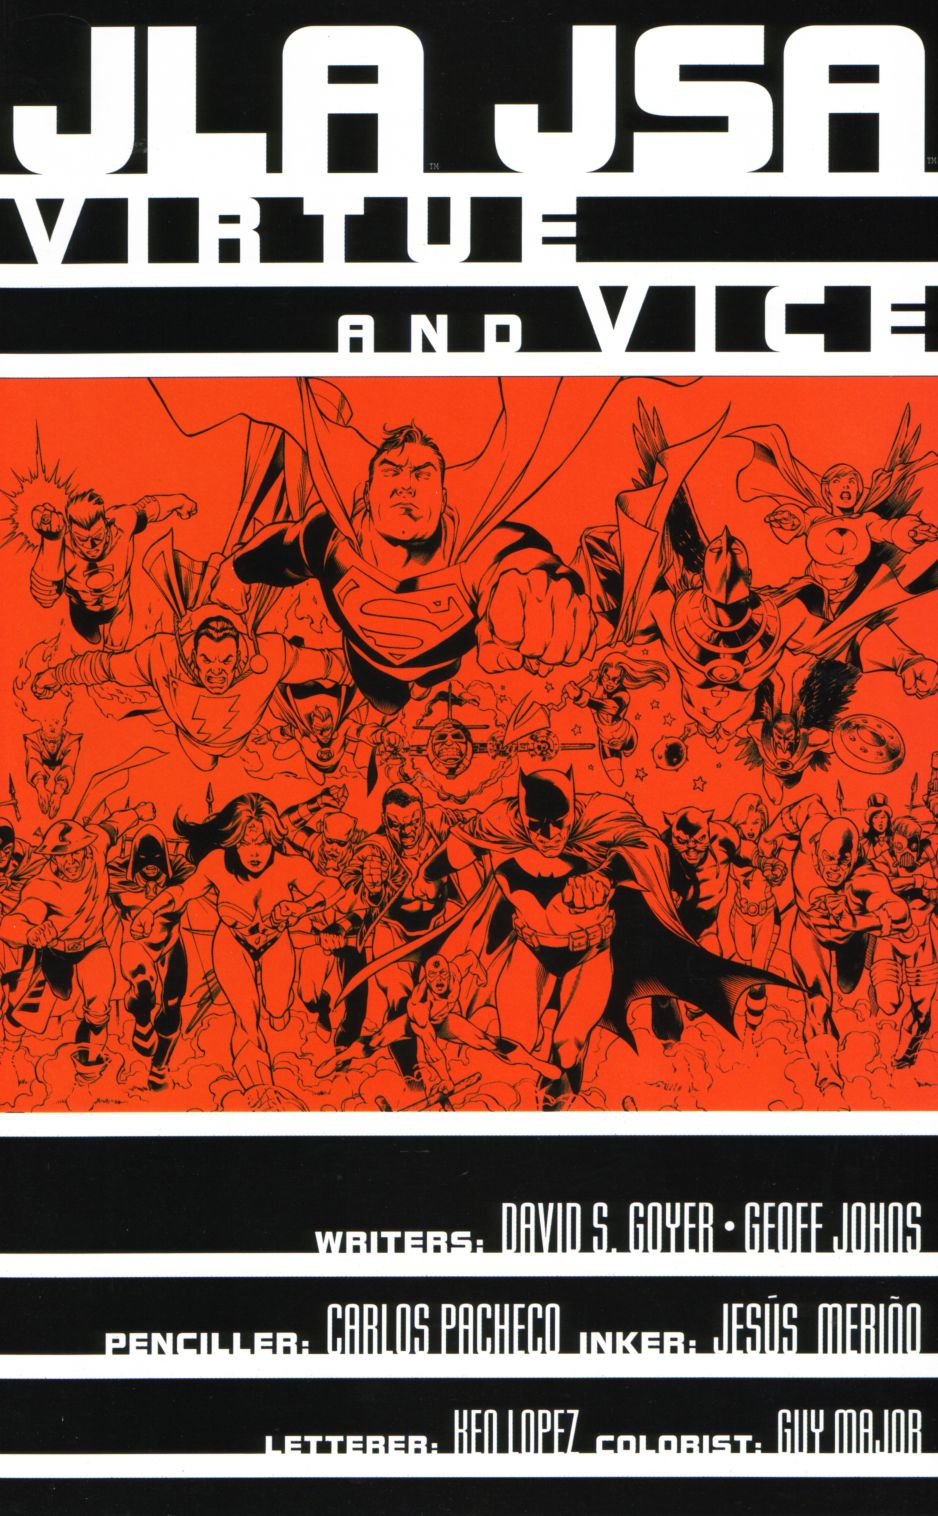 Read online JLA/JSA: Virtue and Vice comic -  Issue # TPB - 4